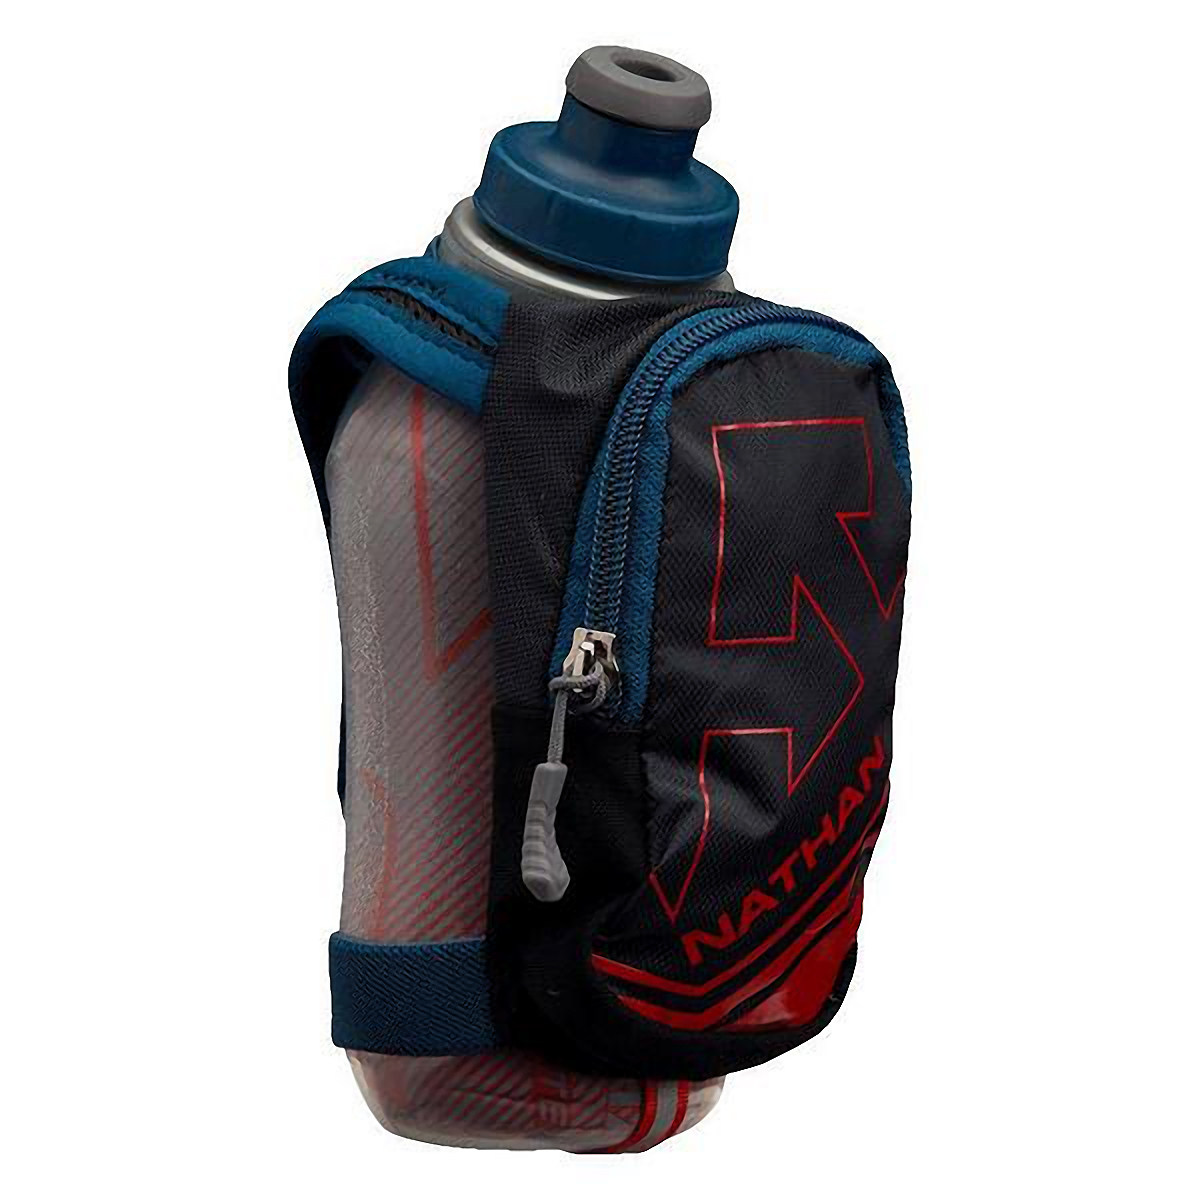 Nathan Speedshot Plus Insulated Flask  - Color: Black/High Risk Red - Size: One Size, Black/High Risk Red, large, image 1